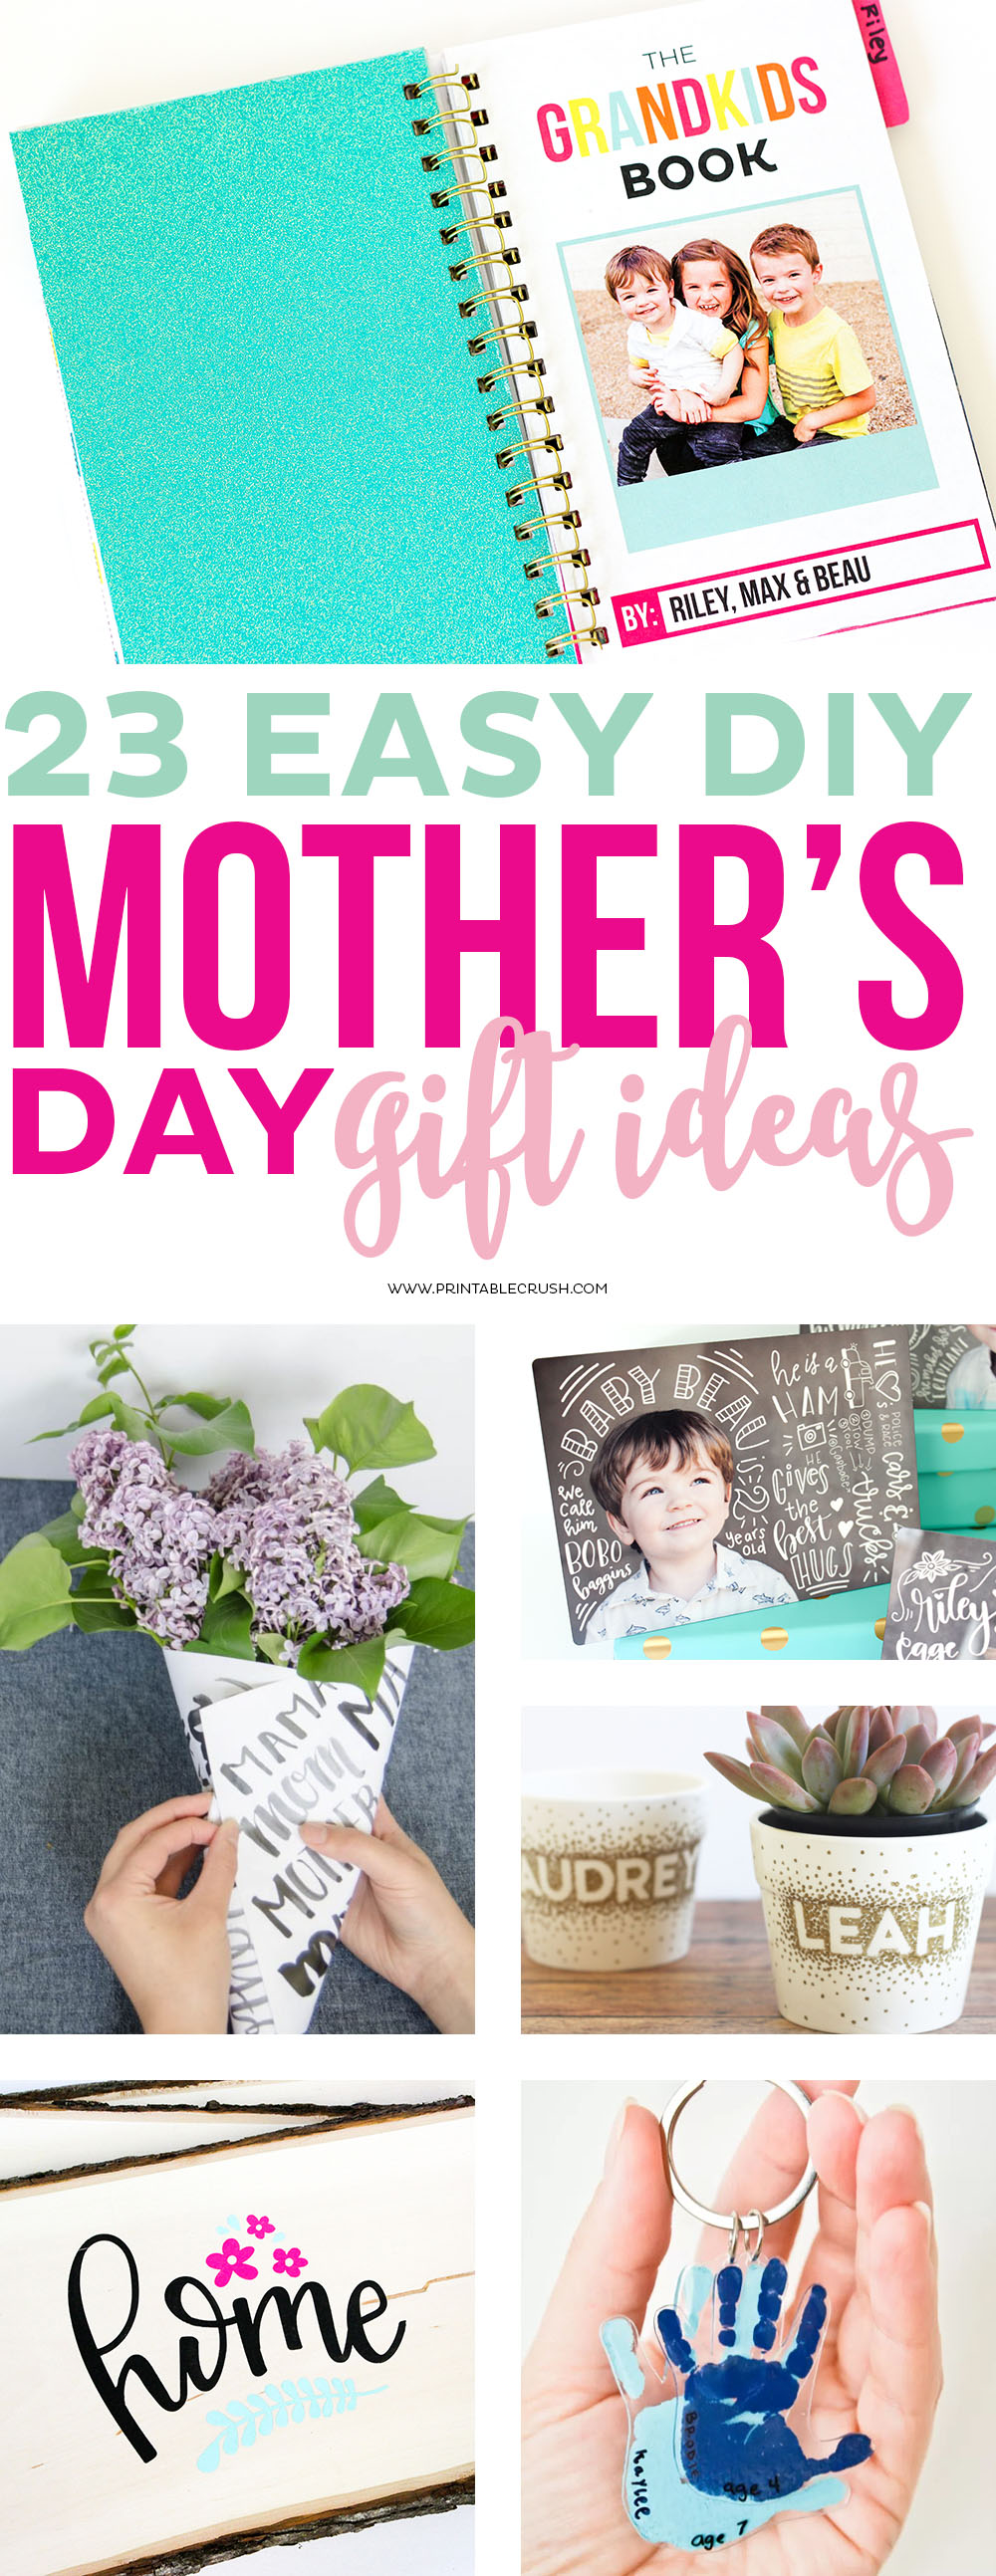 23 easy diy mother 39 s day gift ideas printable crush Mothers day presents diy